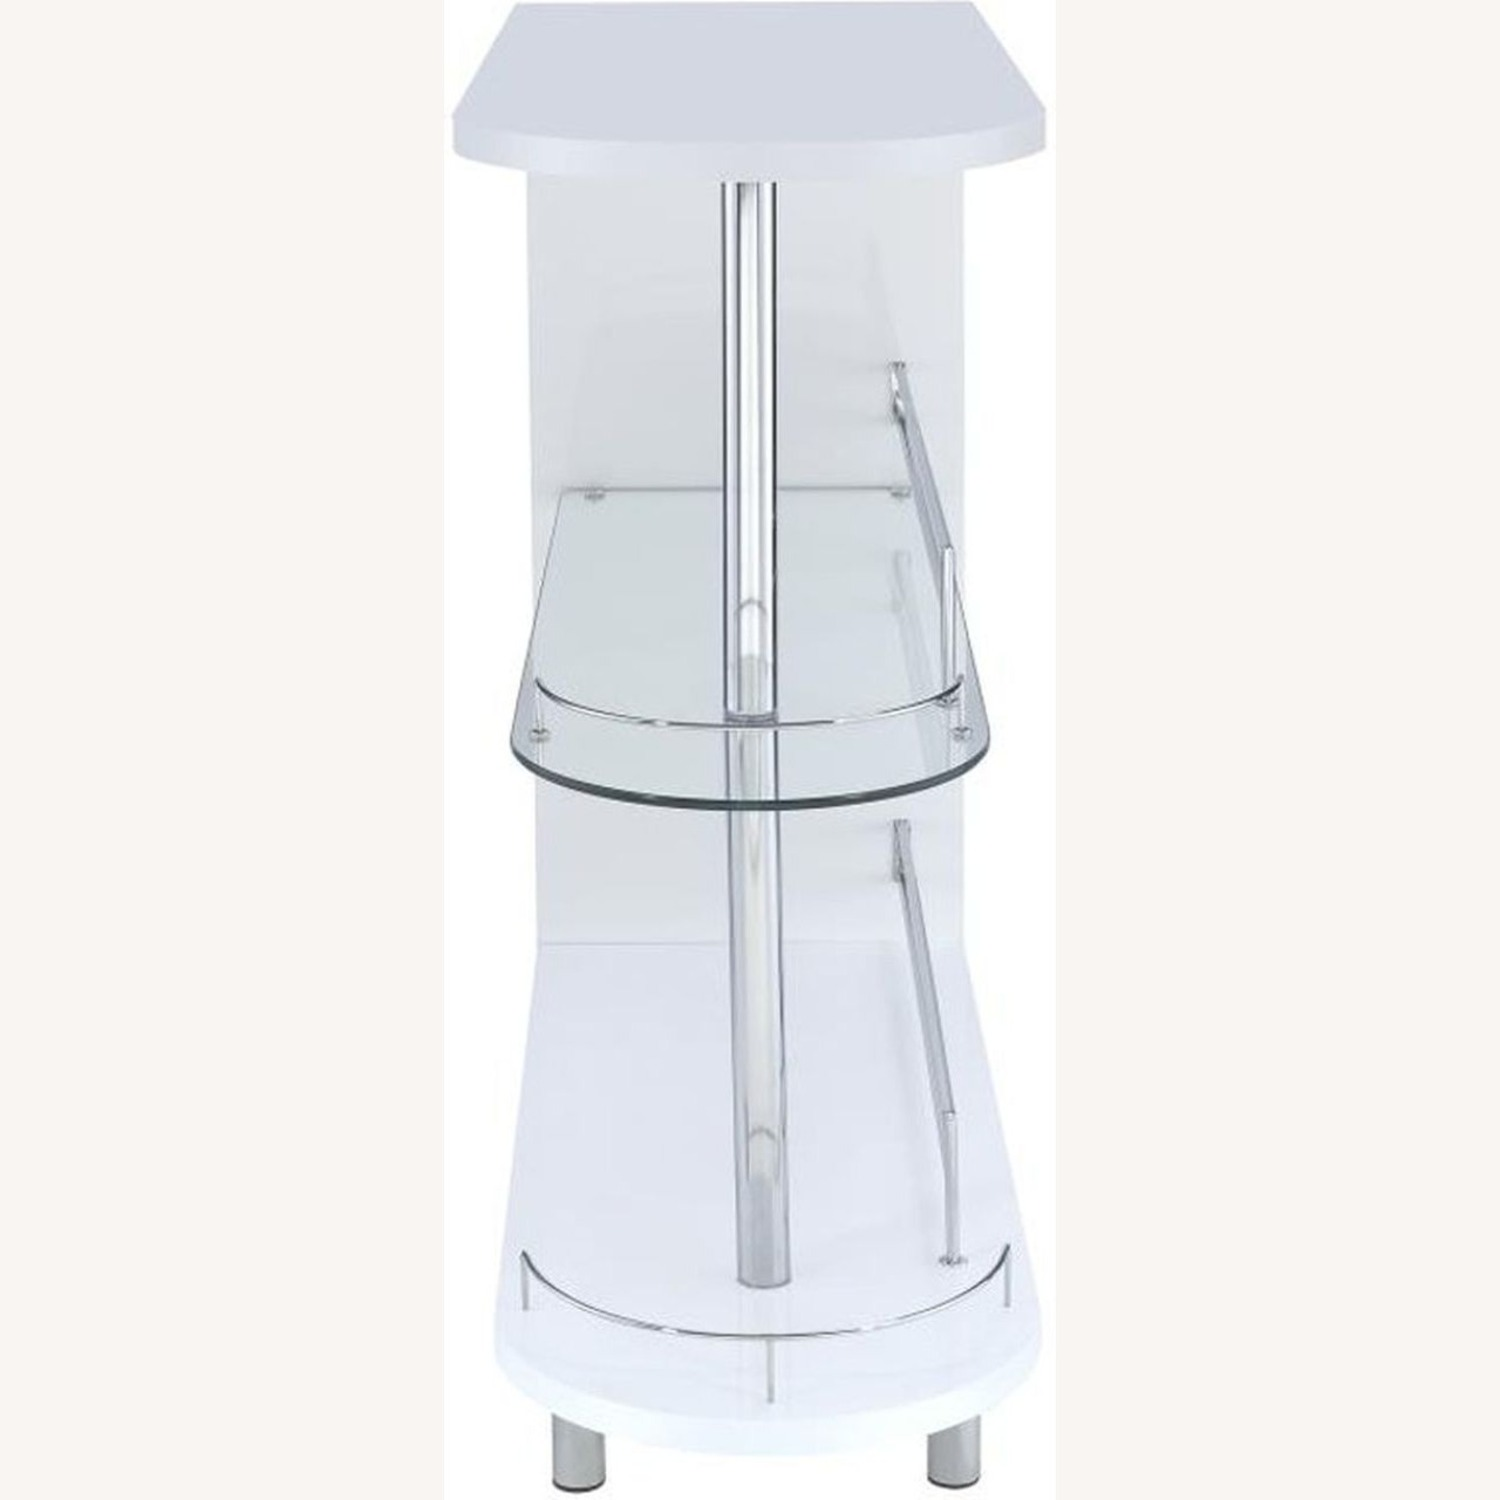 Bar Cart In Glossy White W/ Tempered Glass Shelf - image-2